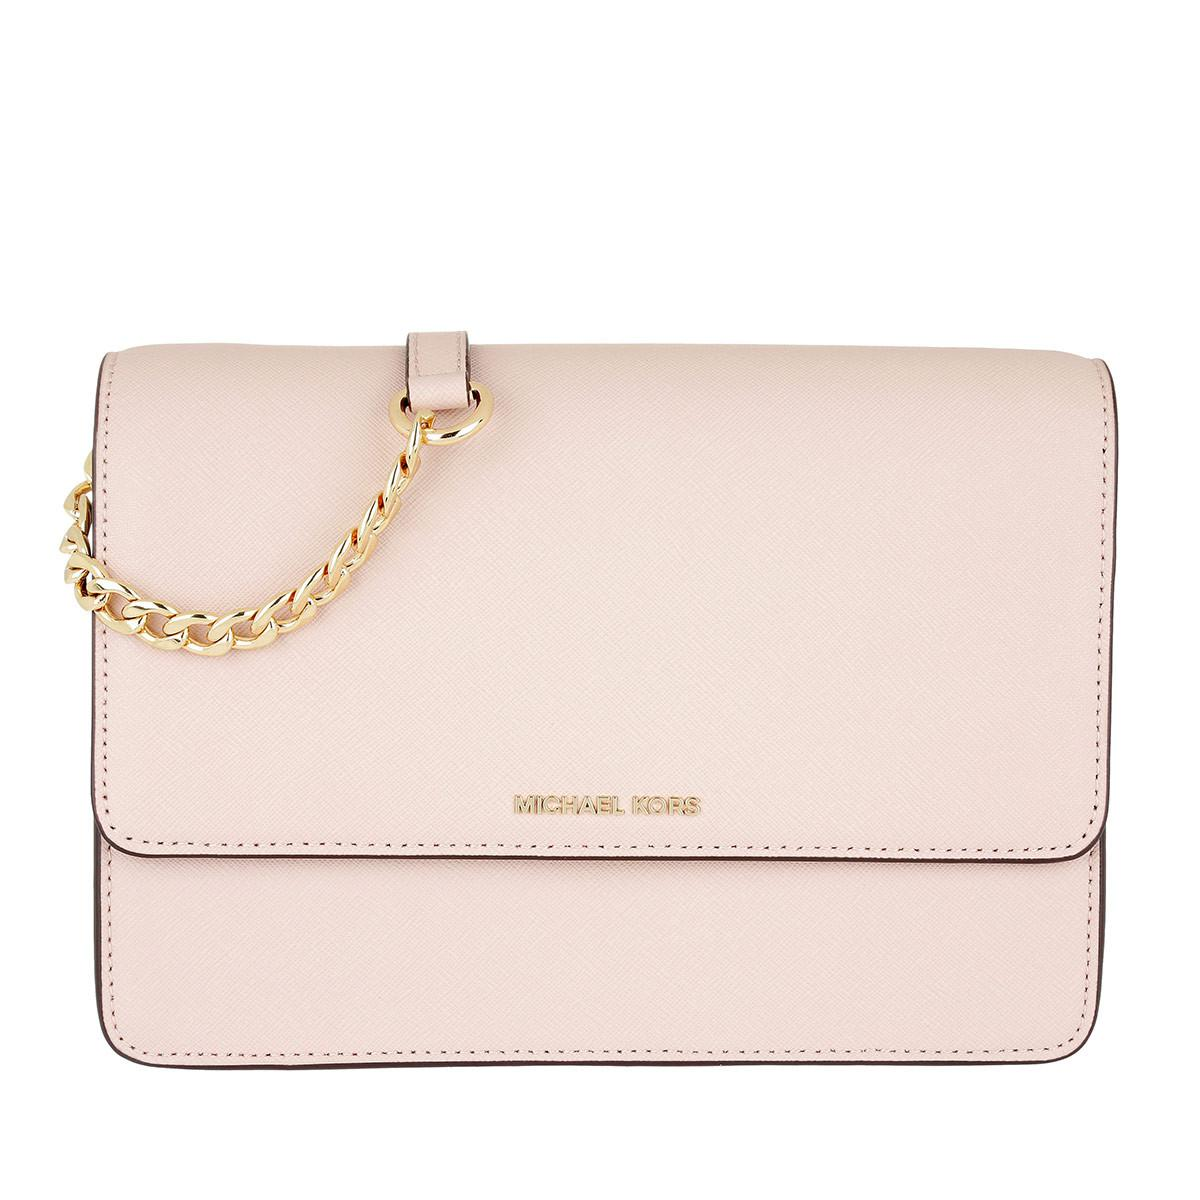 d0a17415e9a7 Michael Kors Daniela Large Crossbody Leather Soft Pink in Pink - Lyst